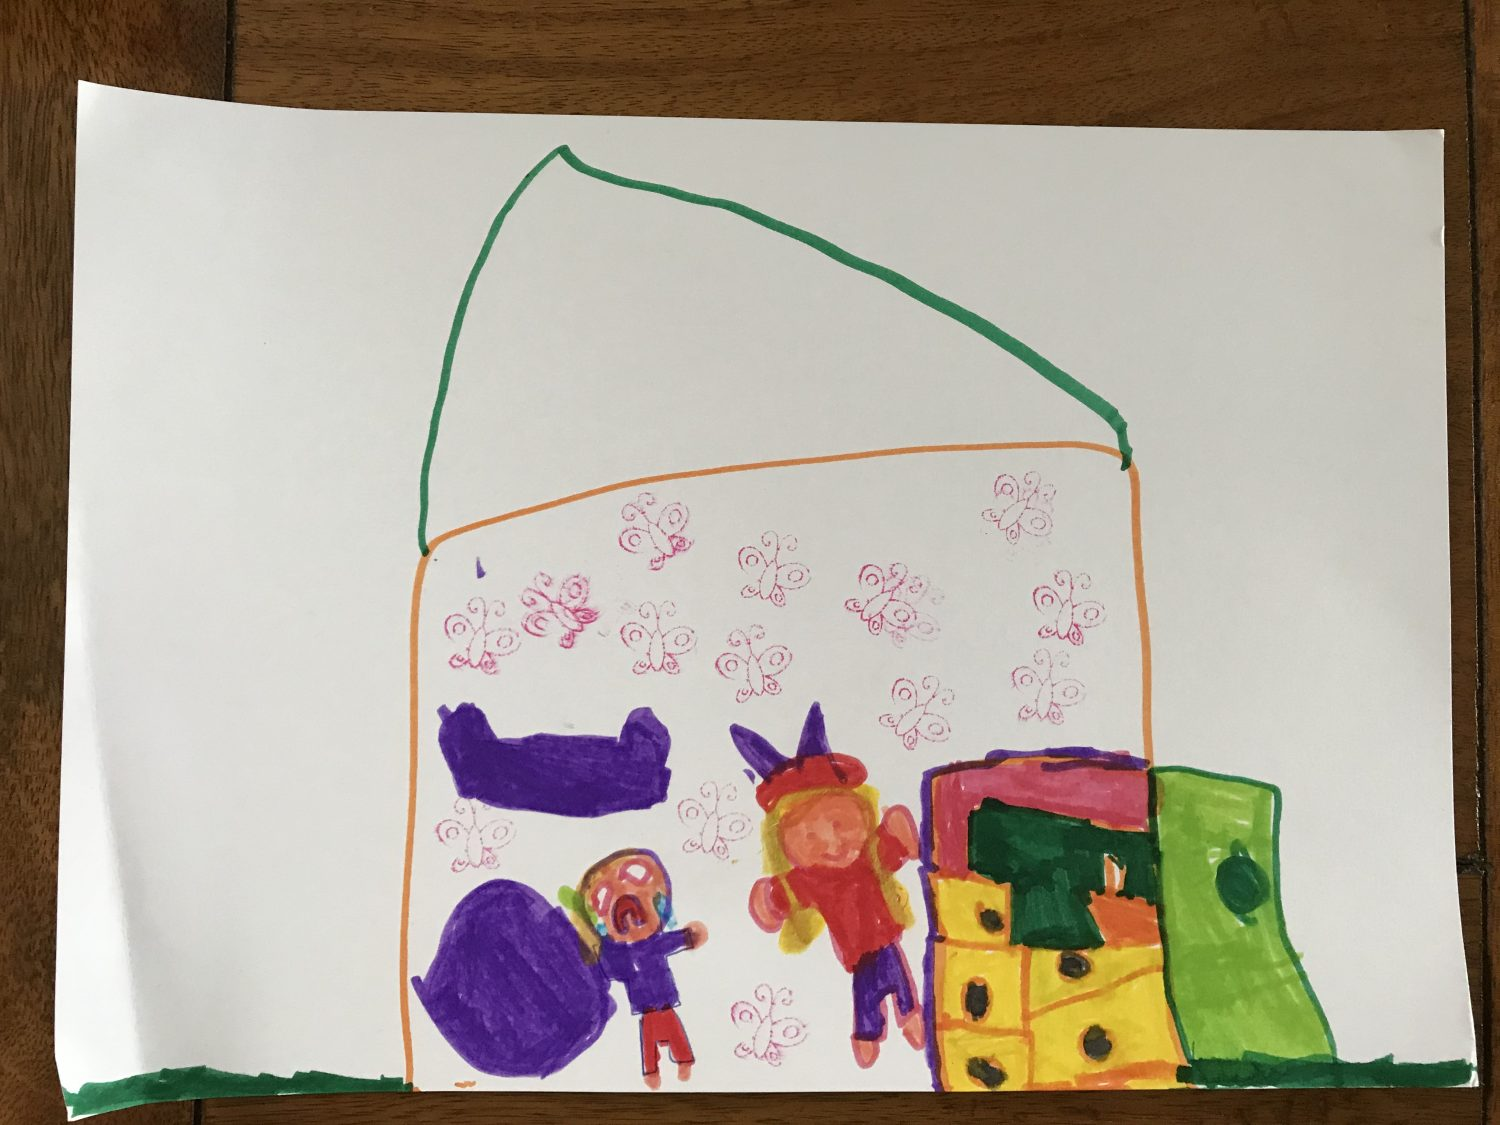 children's drawing in coloured pen of a house with two children inside